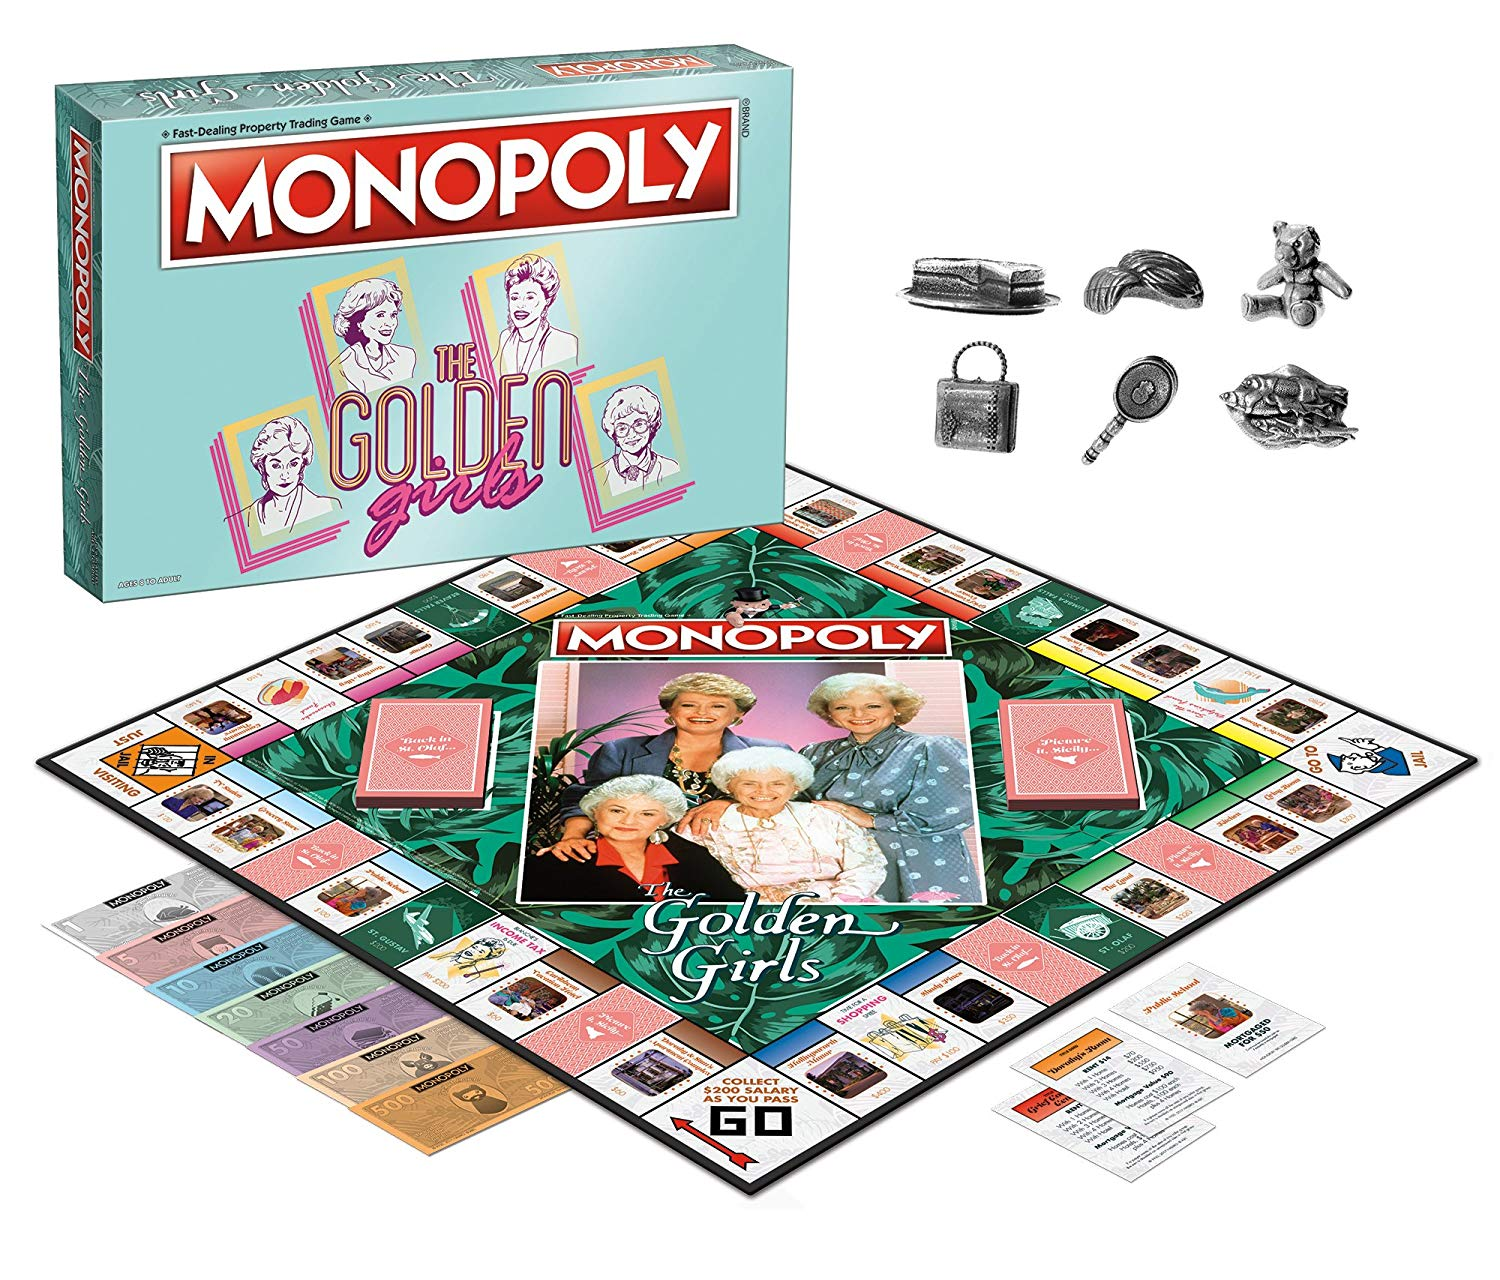 themed monopoly set